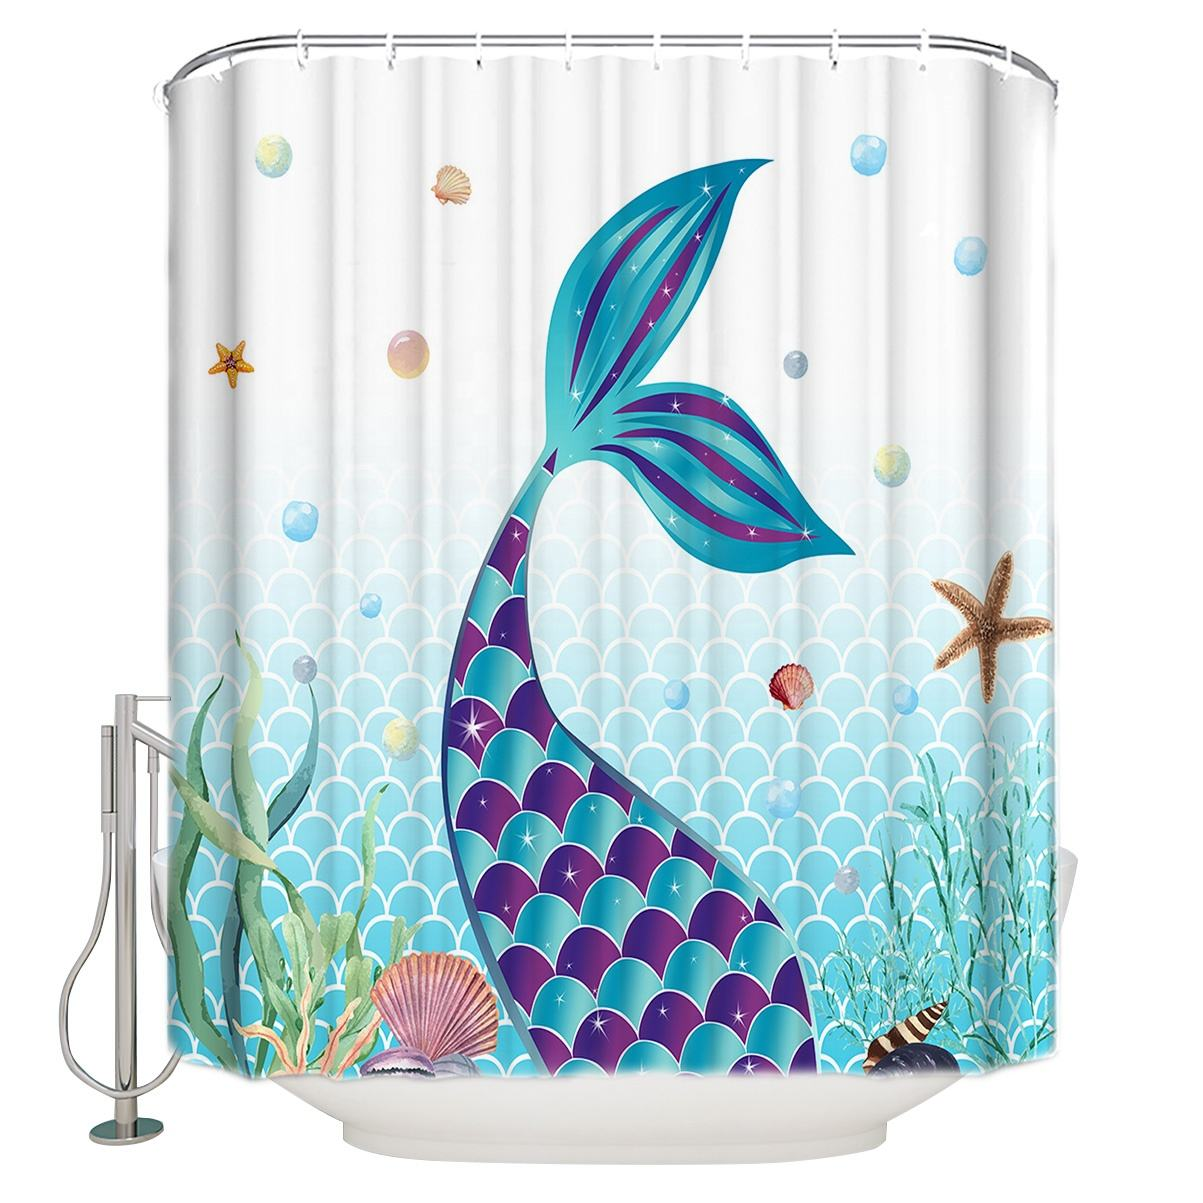 Abstract mermaid tail pattern digital printed bathroom shower curtains for shower room